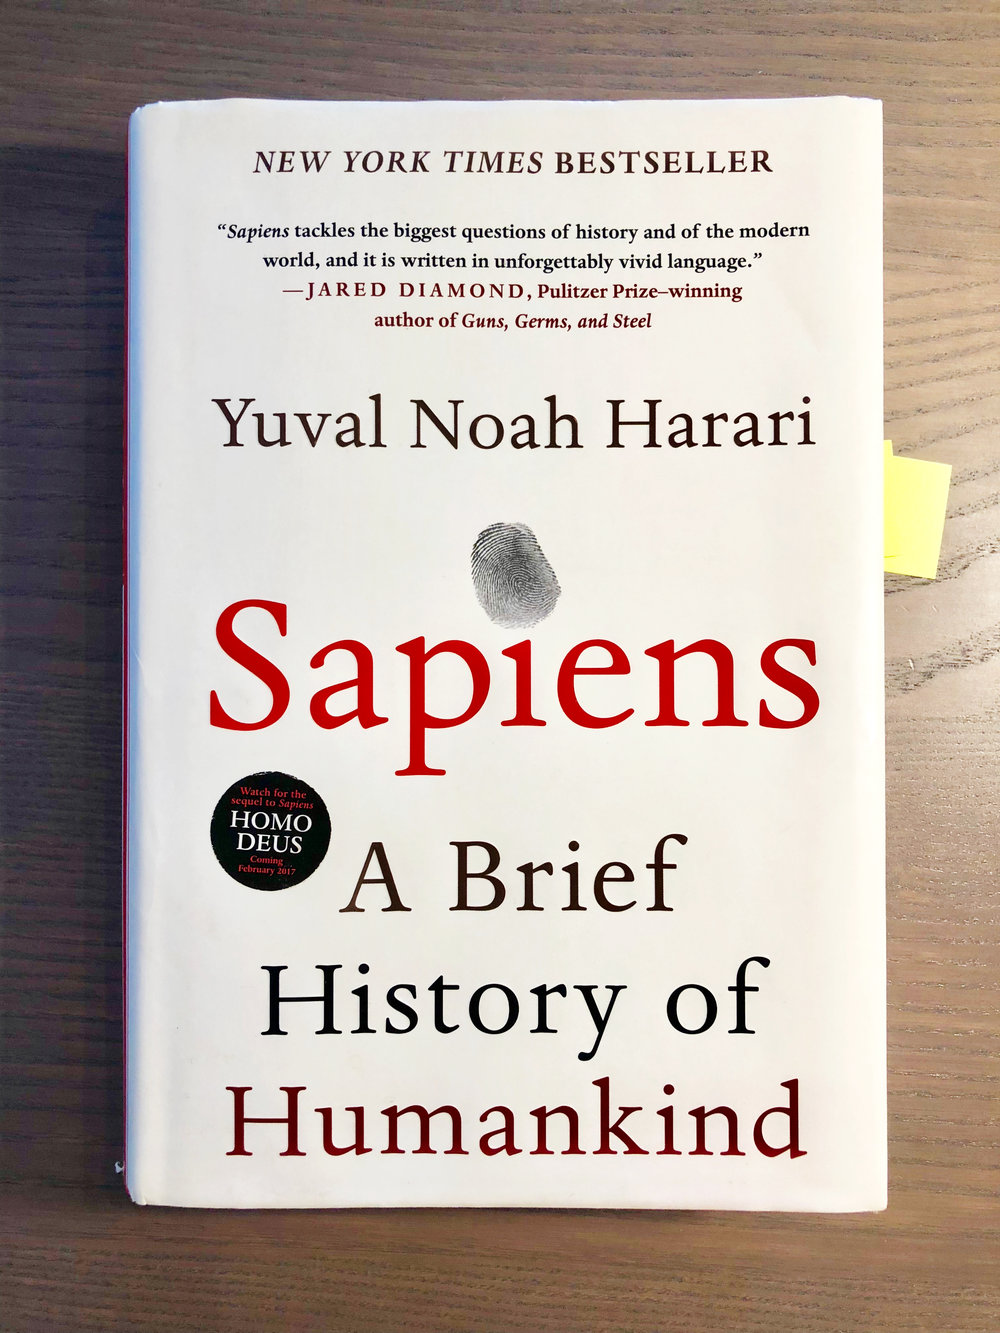 While I have a tendency to binge-read a book I find particularly interesting, I took my time digesting  Sapiens . I consider Harari's look into the past essential reading for humanity.